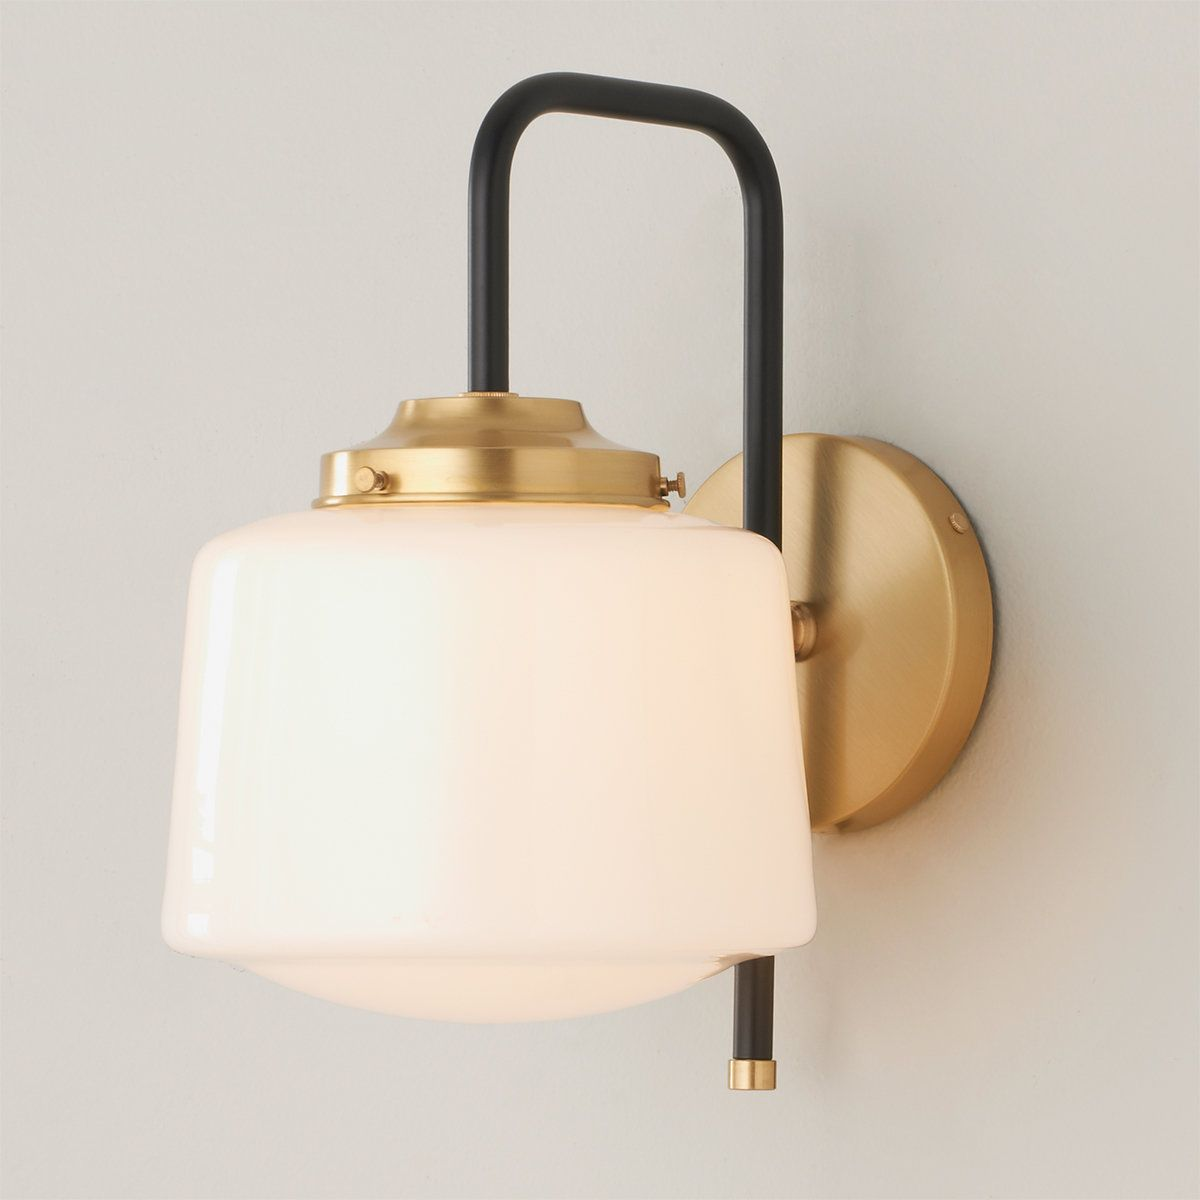 Opal Schoolhouse Sconce In 2021 Sconce Lighting Living Room Sconces School House Lighting